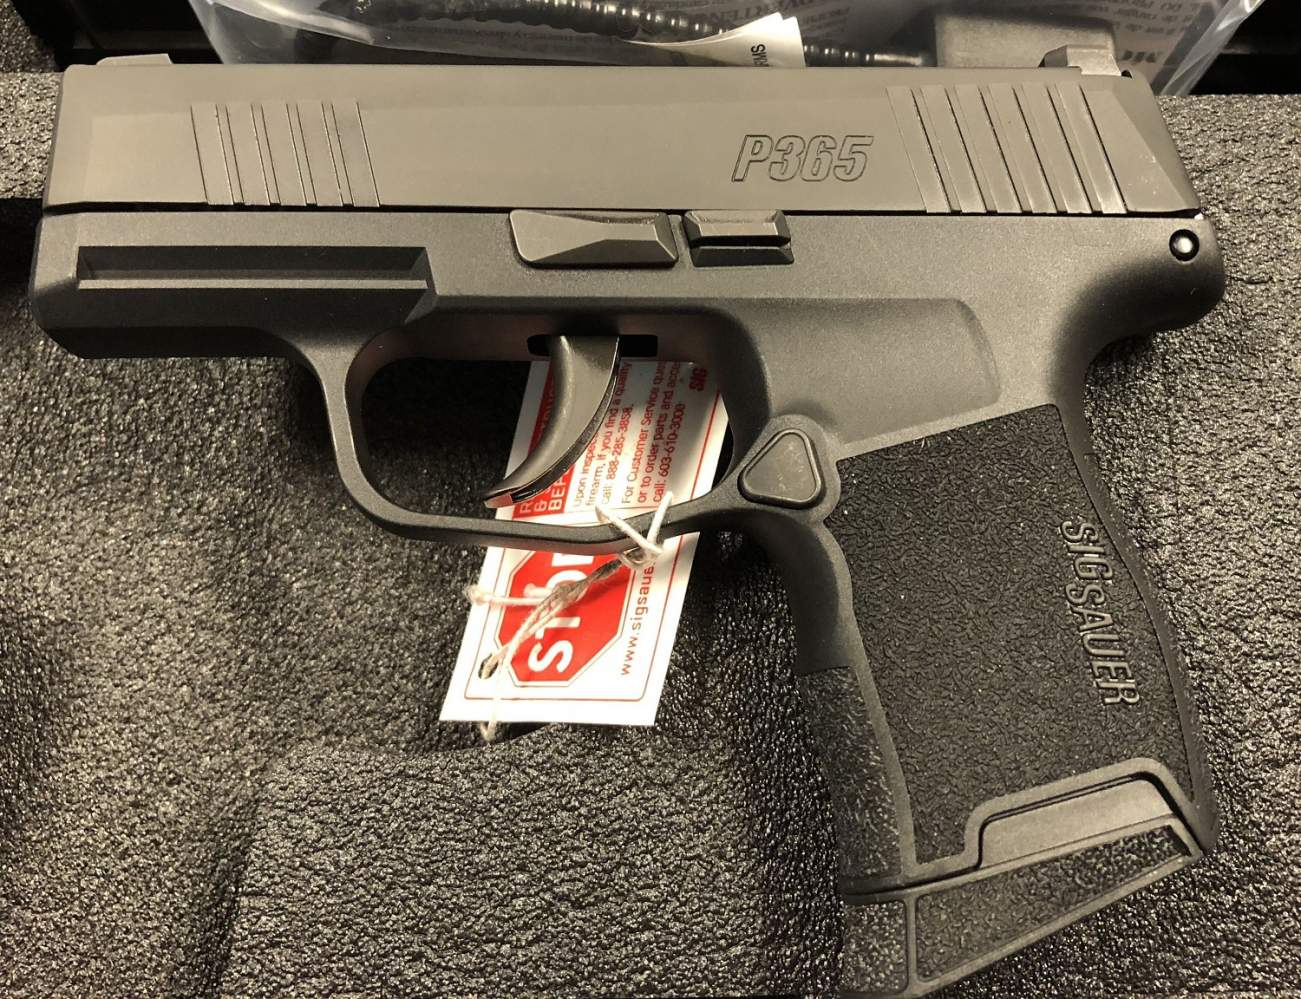 Meet the Sig Sauer P365: The Best Semi-Automatic Gun on the Planet?